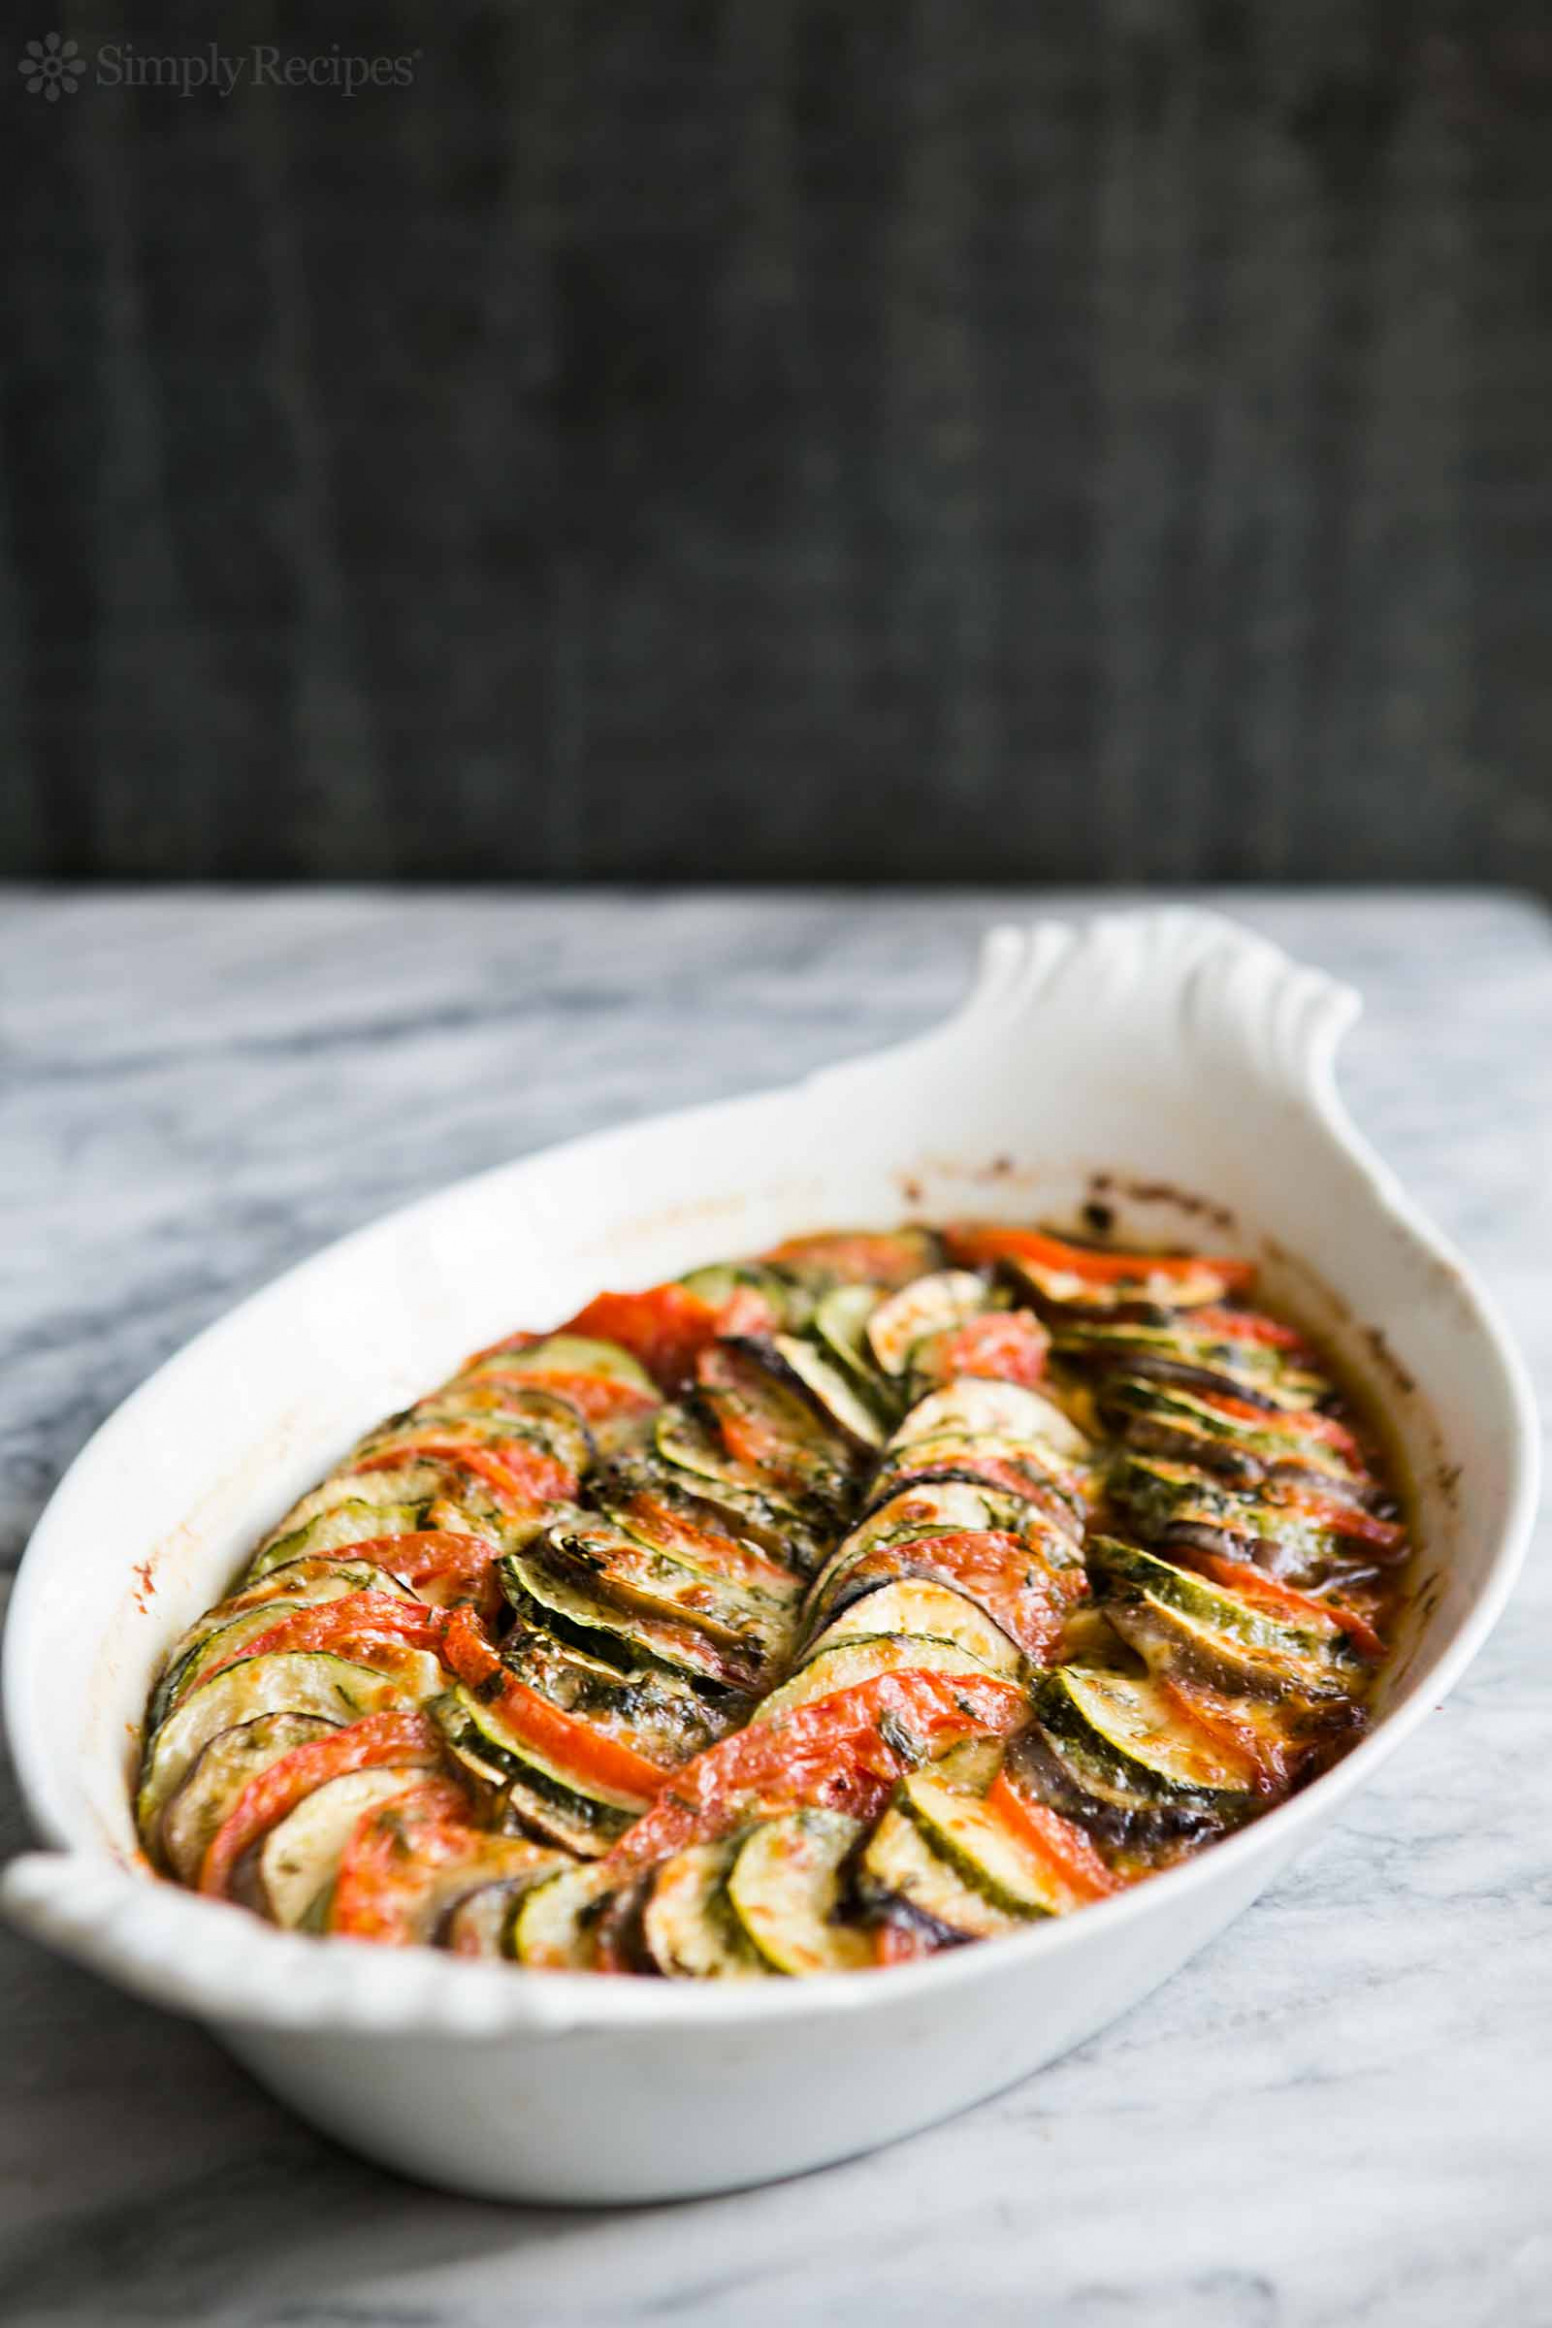 Zucchini, Eggplant, Tomato Gratin - Dinner Recipes With Zucchini And Squash